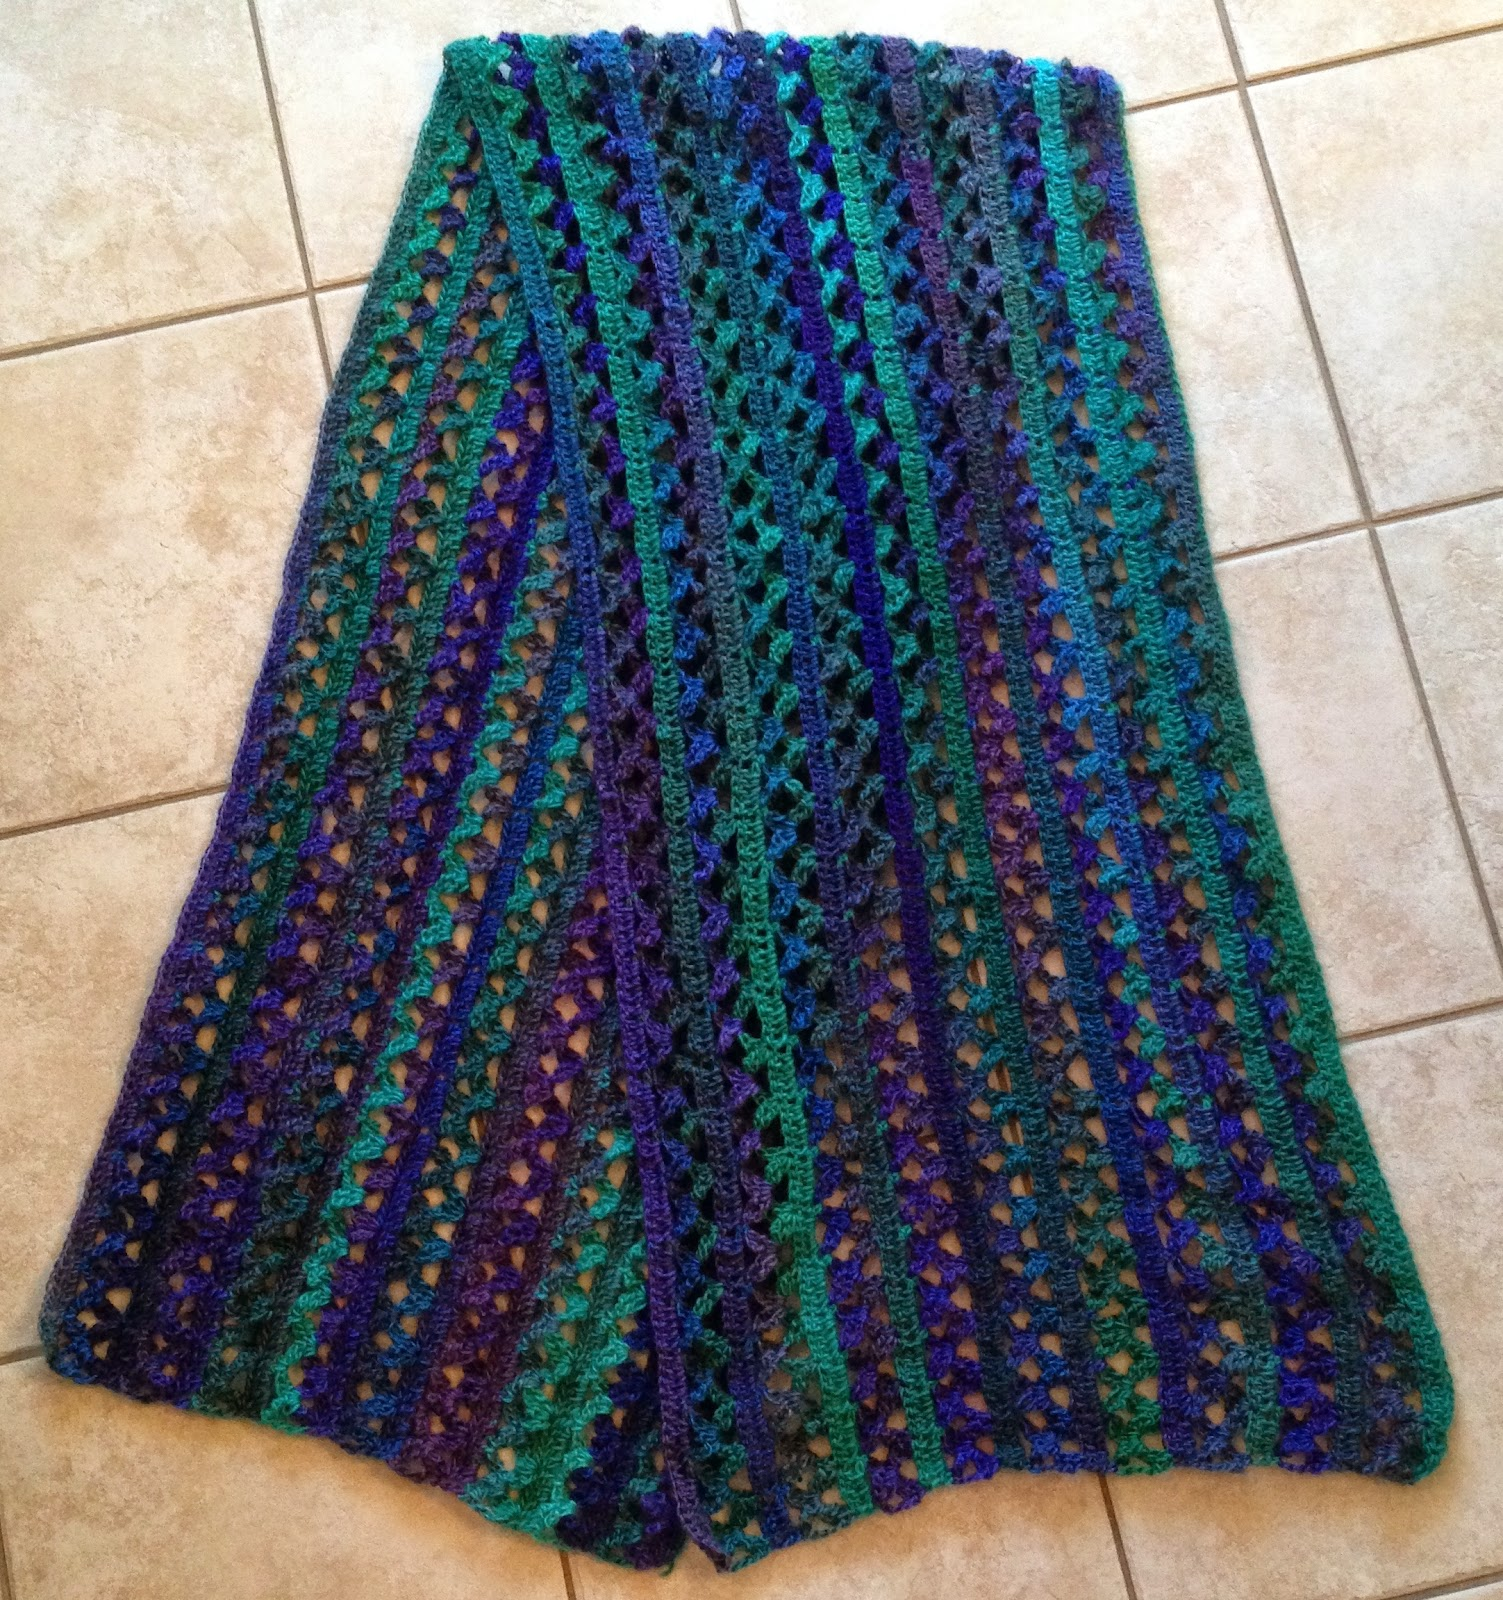 Dylimes\' Craft Castle: Completed: Crochet